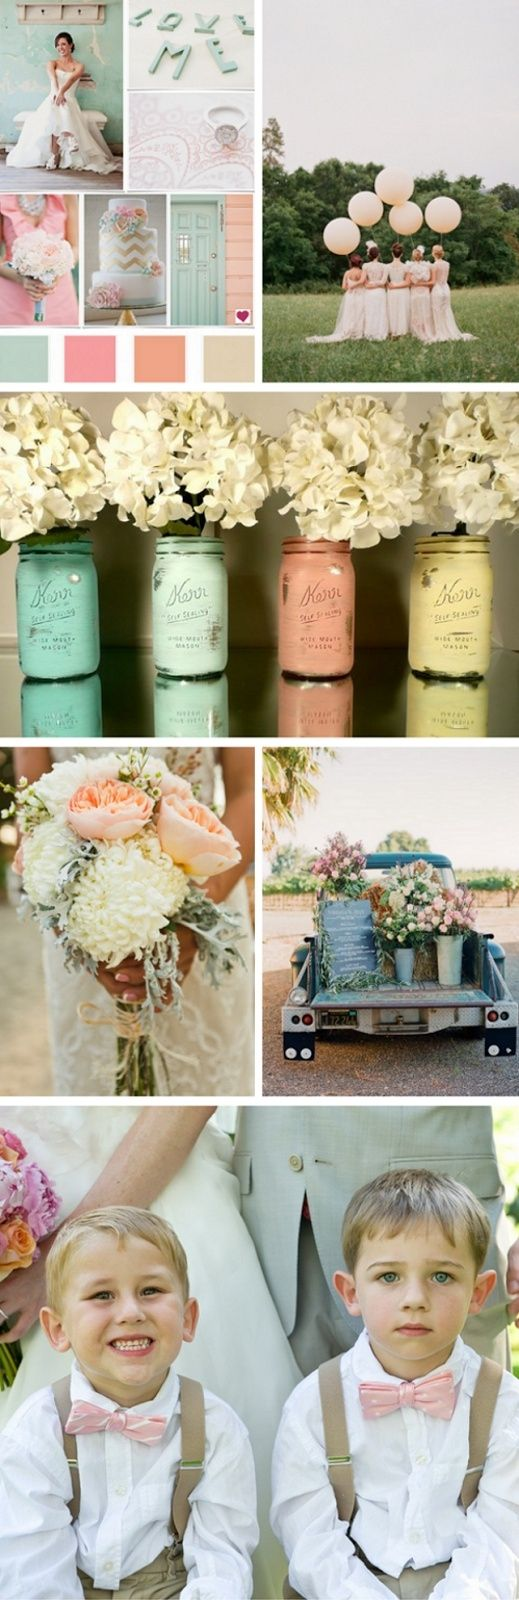 Love the pastels and the pink and taupe!